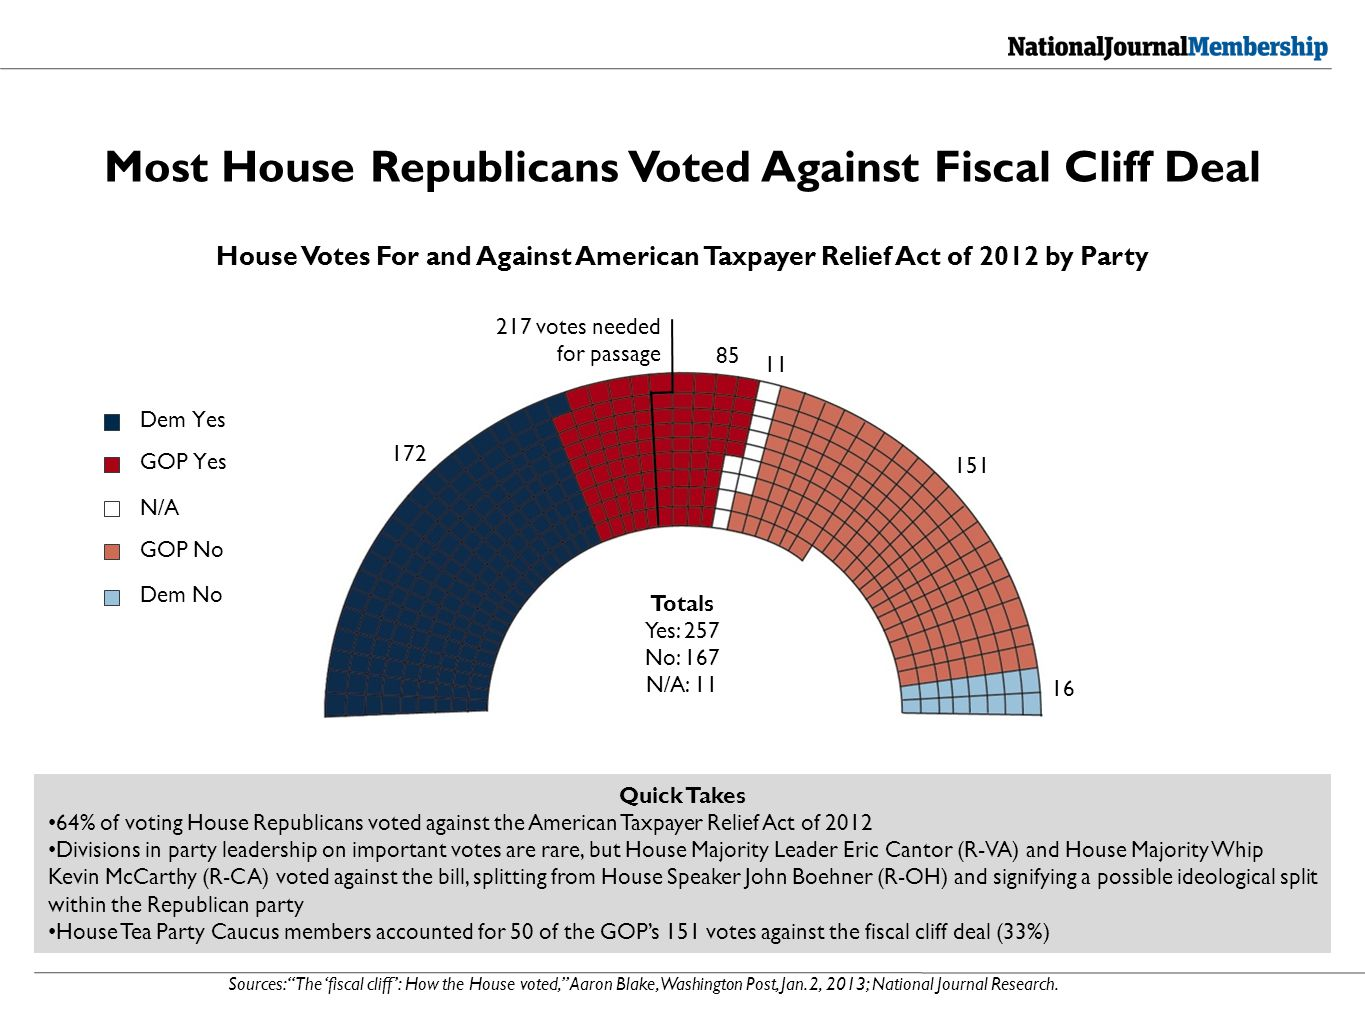 Sources: The 'fiscal cliff': How the House voted, Aaron Blake, Washington Post, Jan.